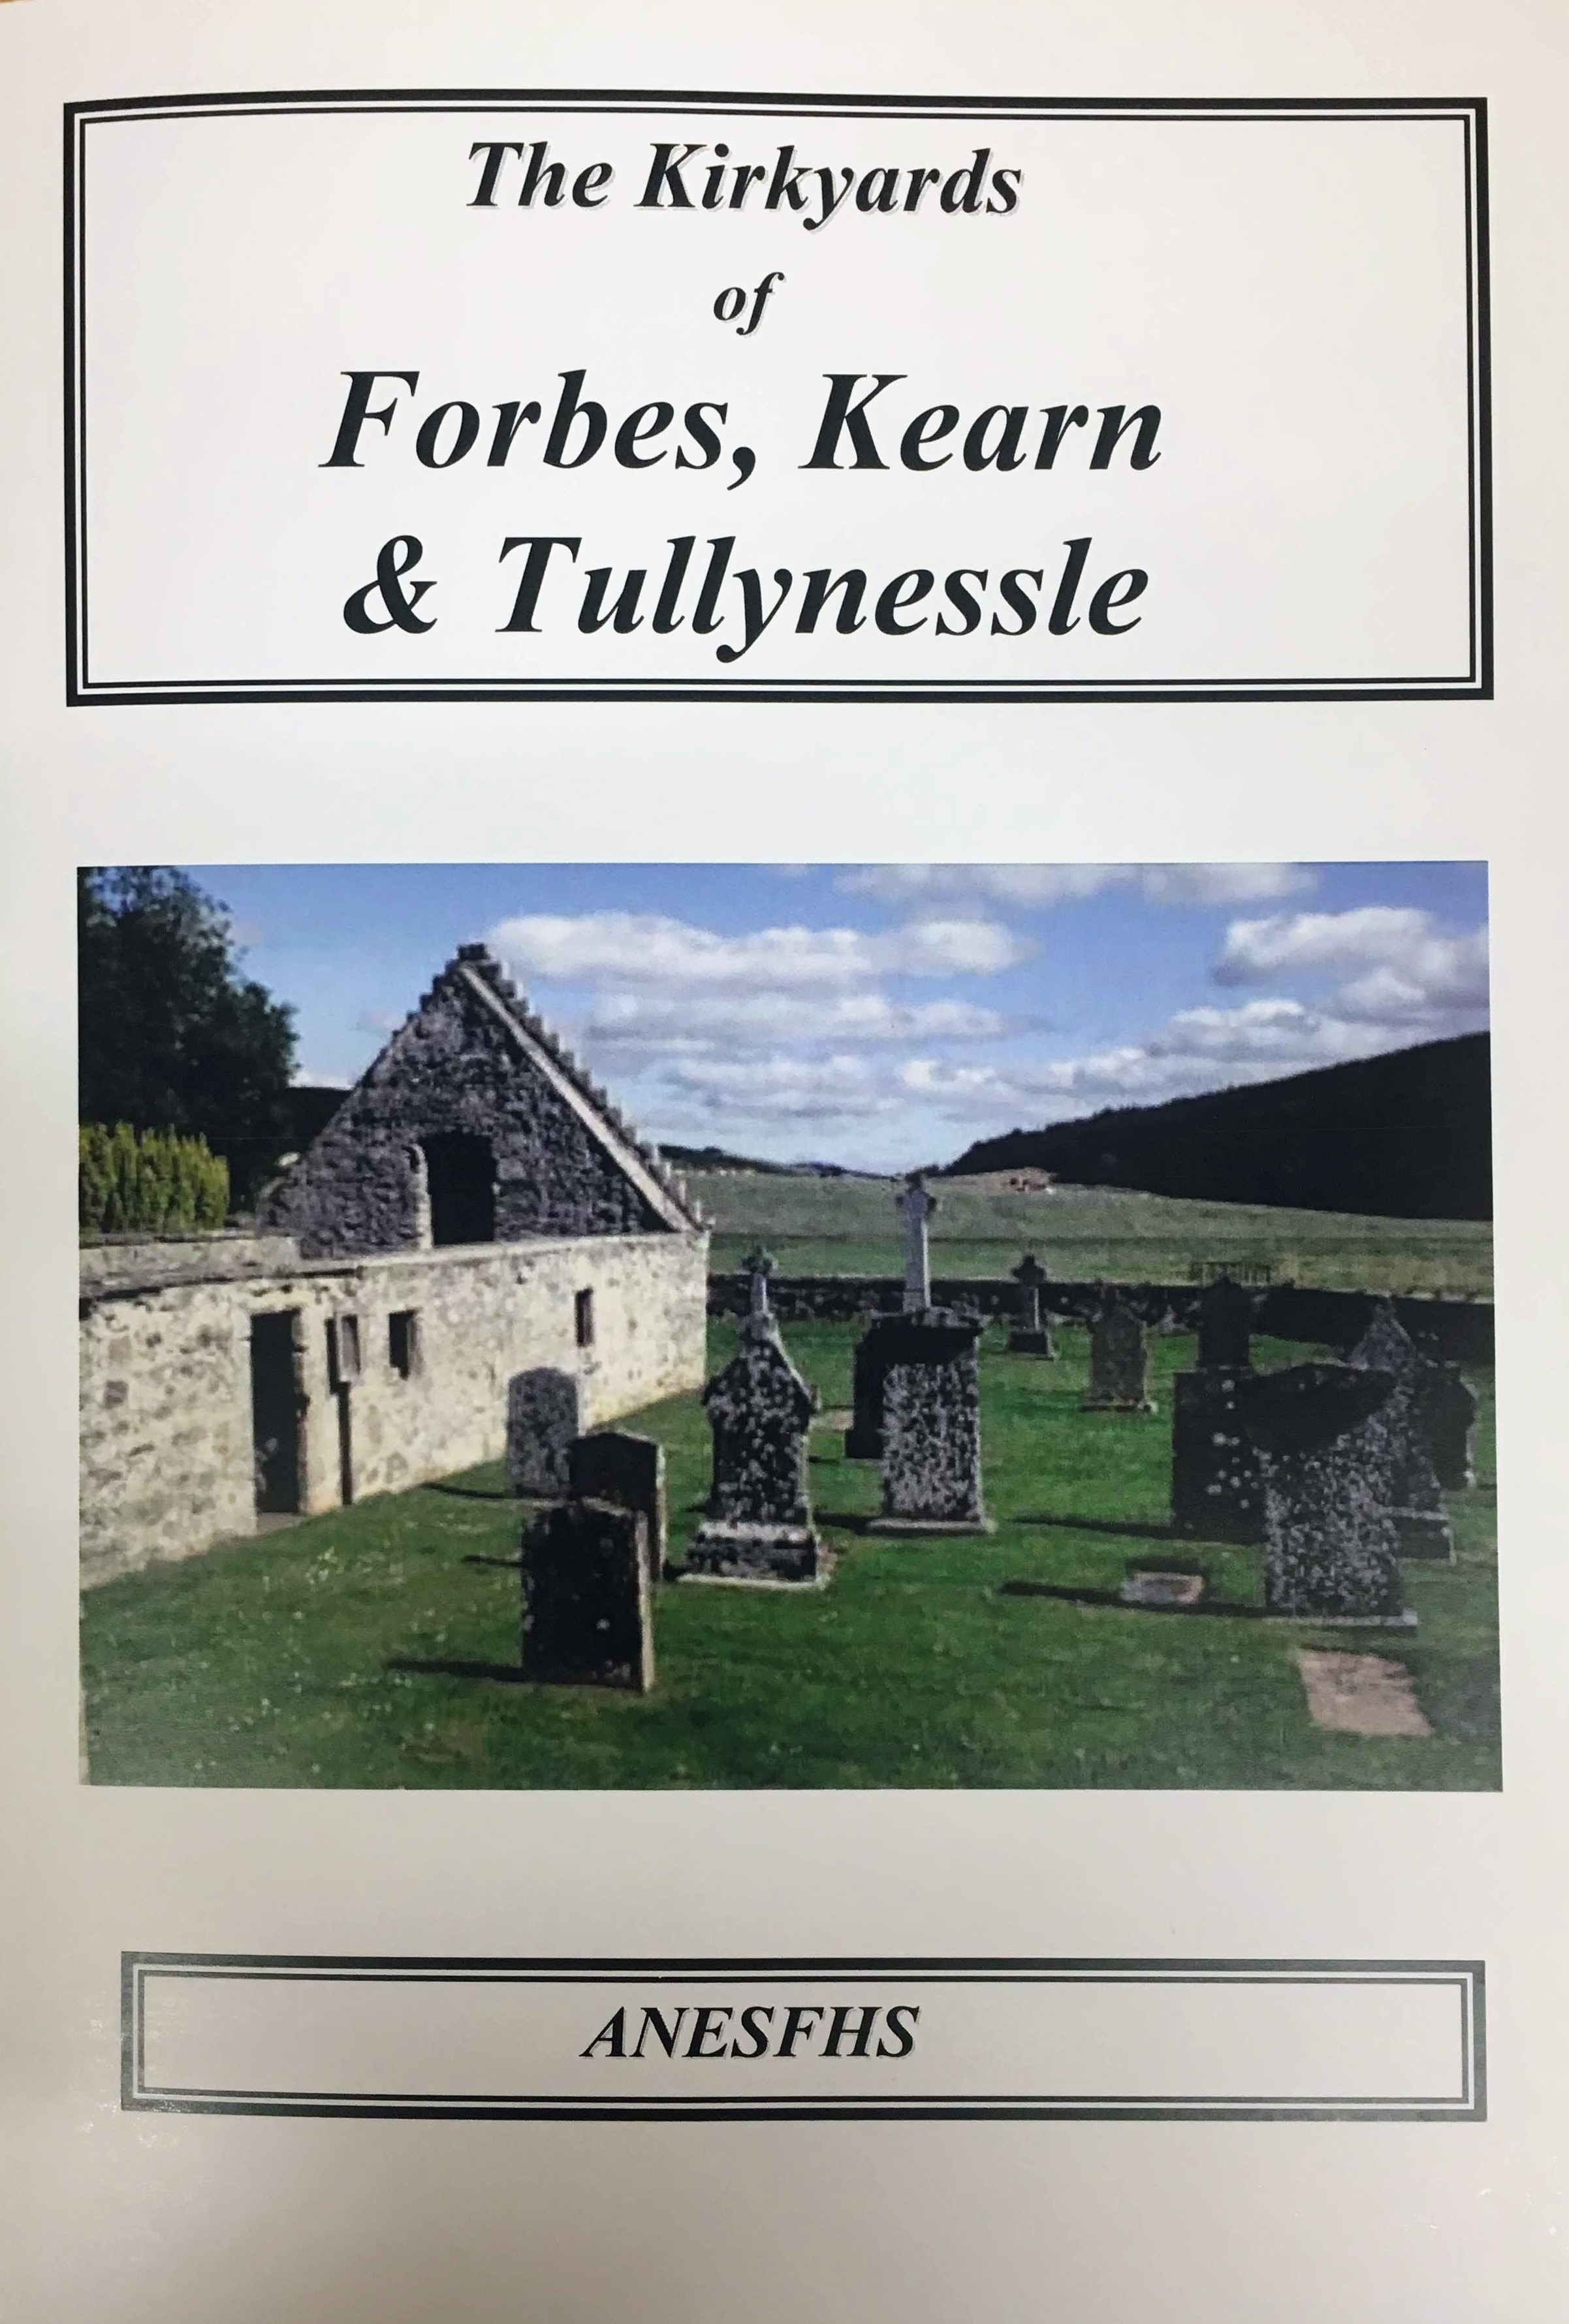 Kirkyards of Forbes, Kearn and Tullynessle